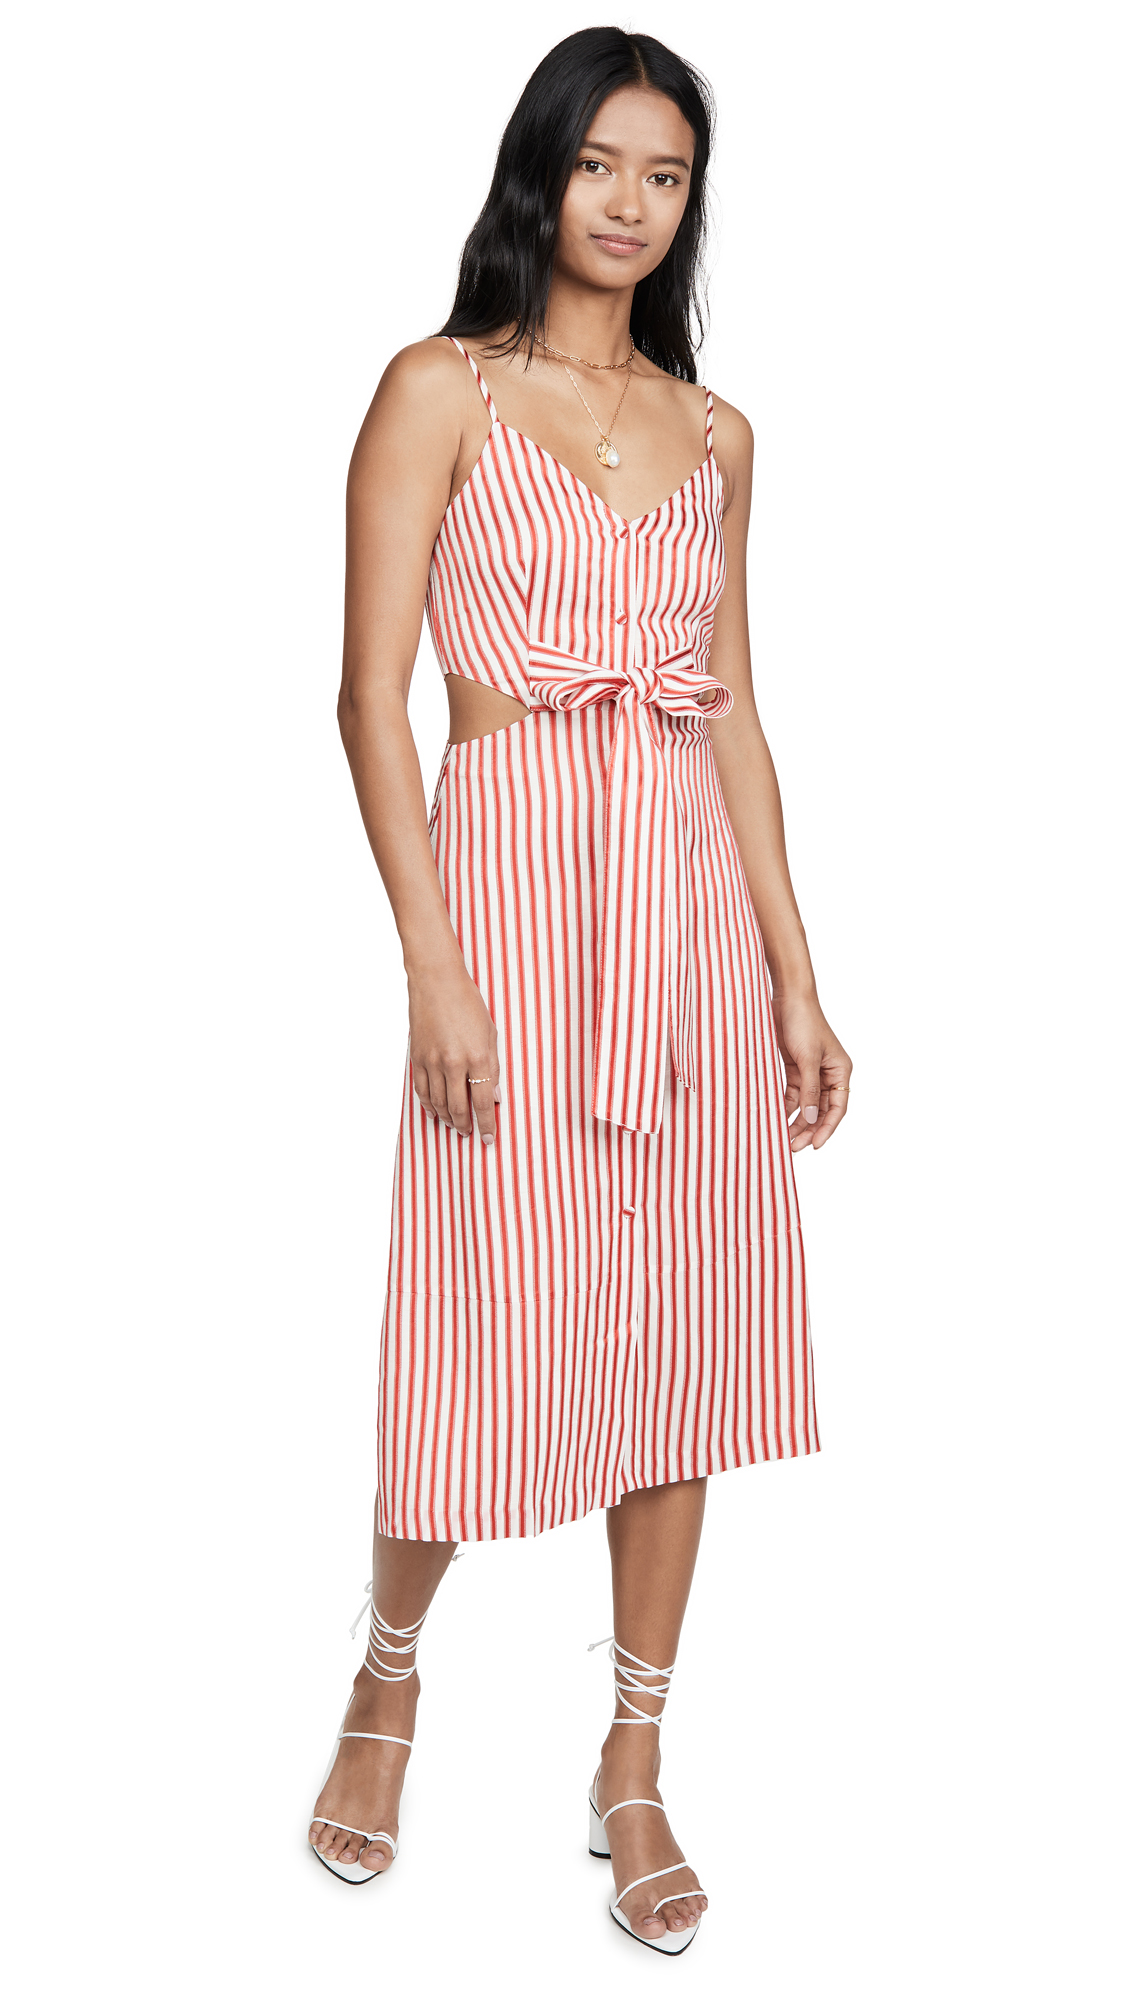 Jason Wu Fluid Stripe Front Tie Dress - 40% Off Sale